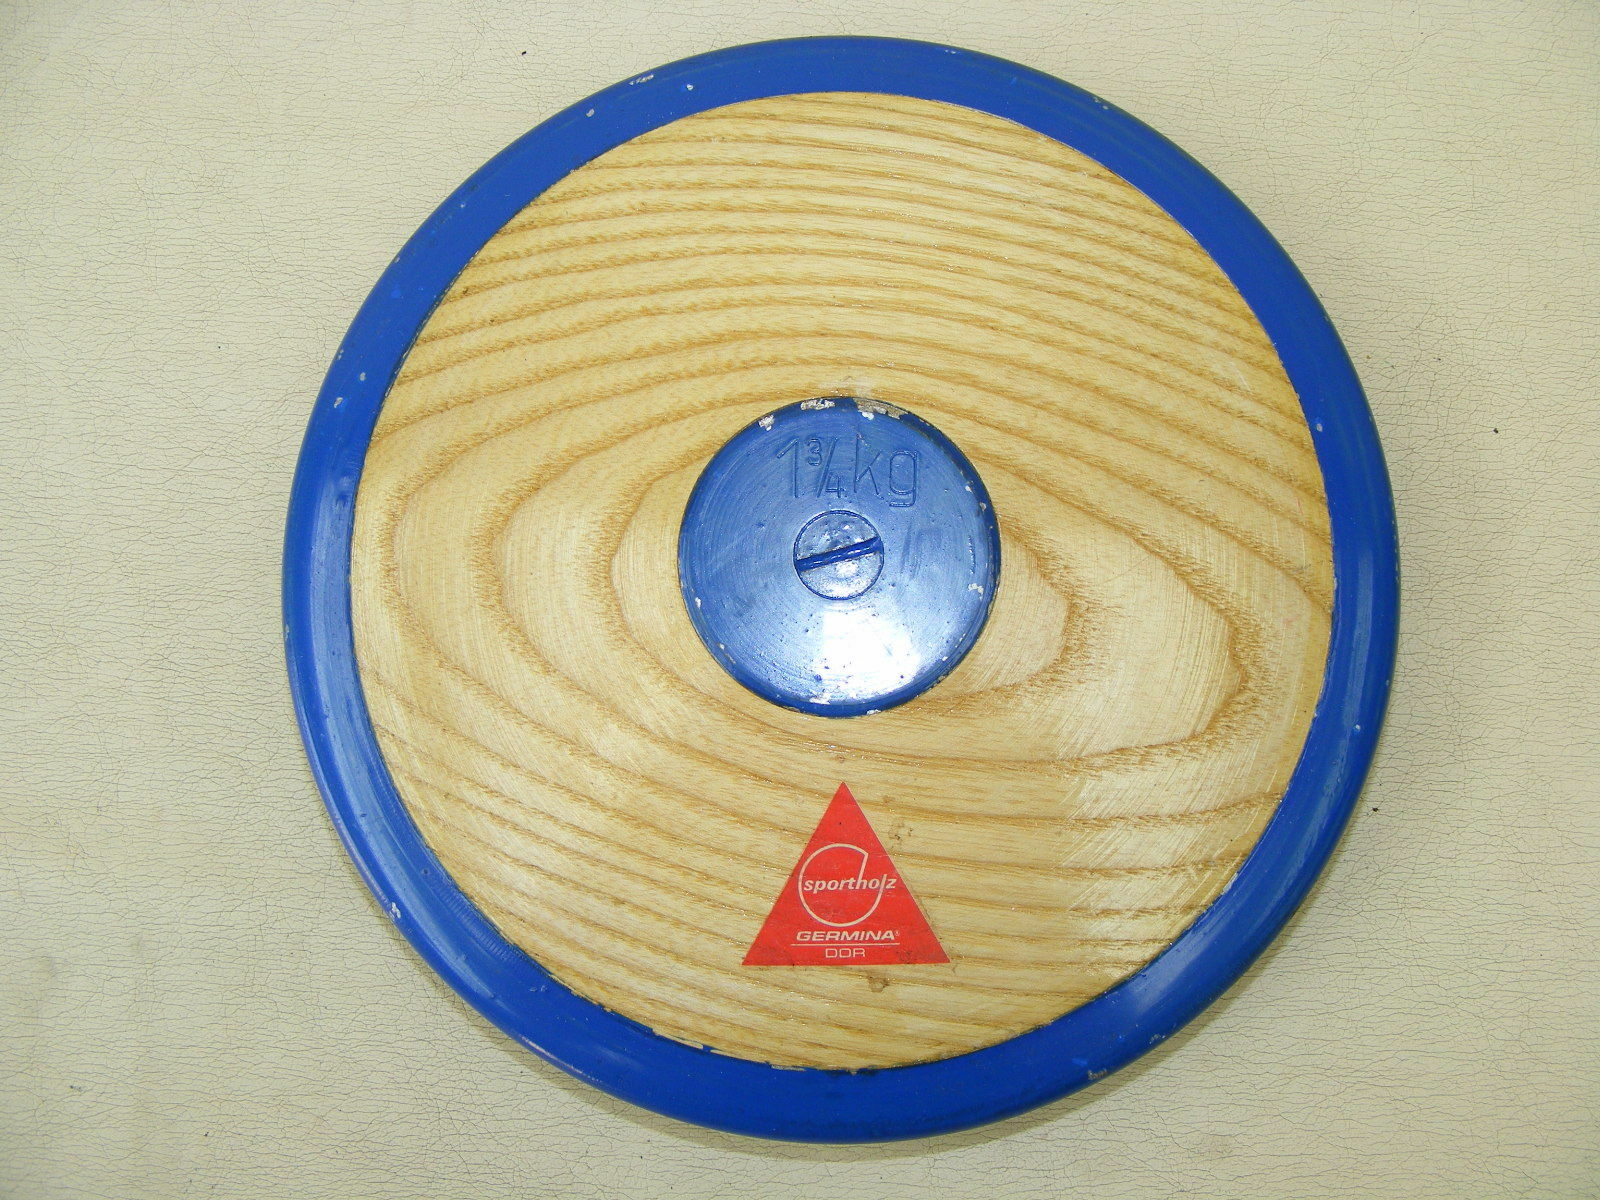 Old Discus Disc 1 3 8.8lbs Vintage Sport Device sportholz GERMINA